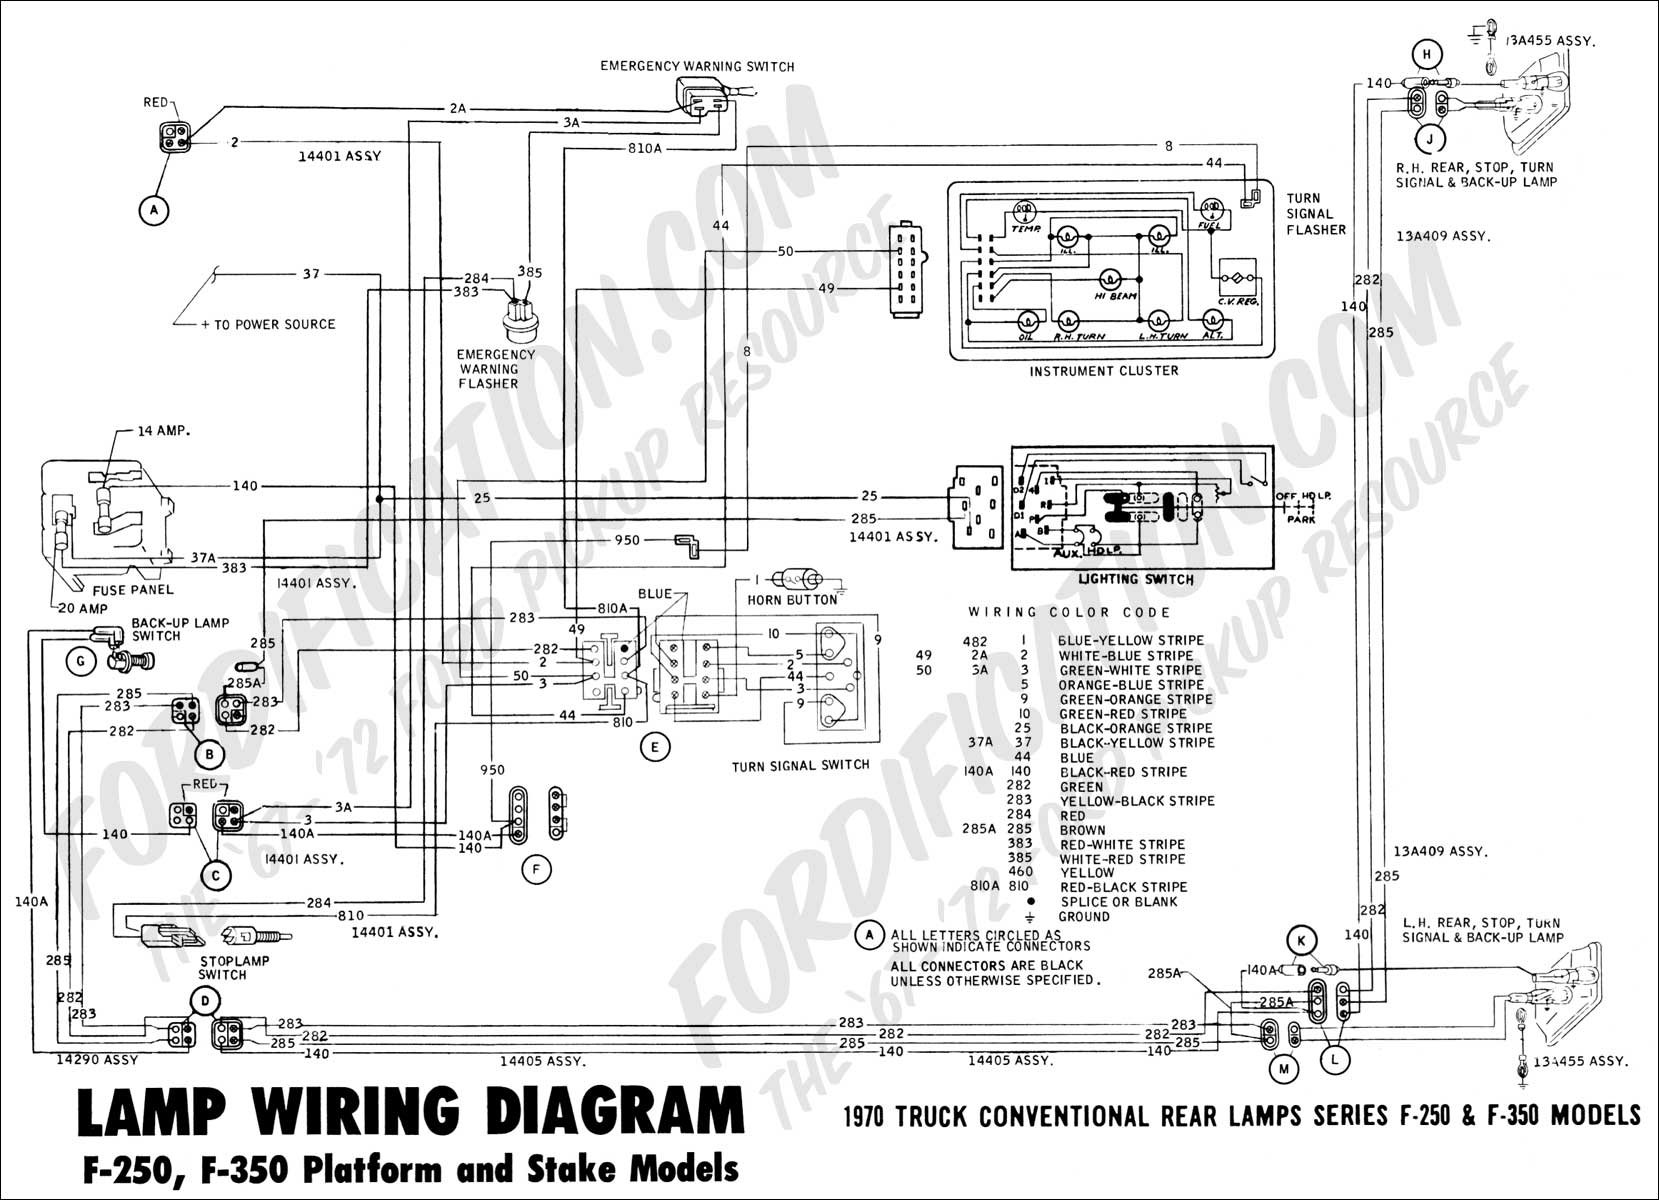 Wire Diagrams 02 Ford F 150 Custom Project Wiring Diagram 2005 Viking Pop Up Camper Truck Technical Drawings And Schematics Section H